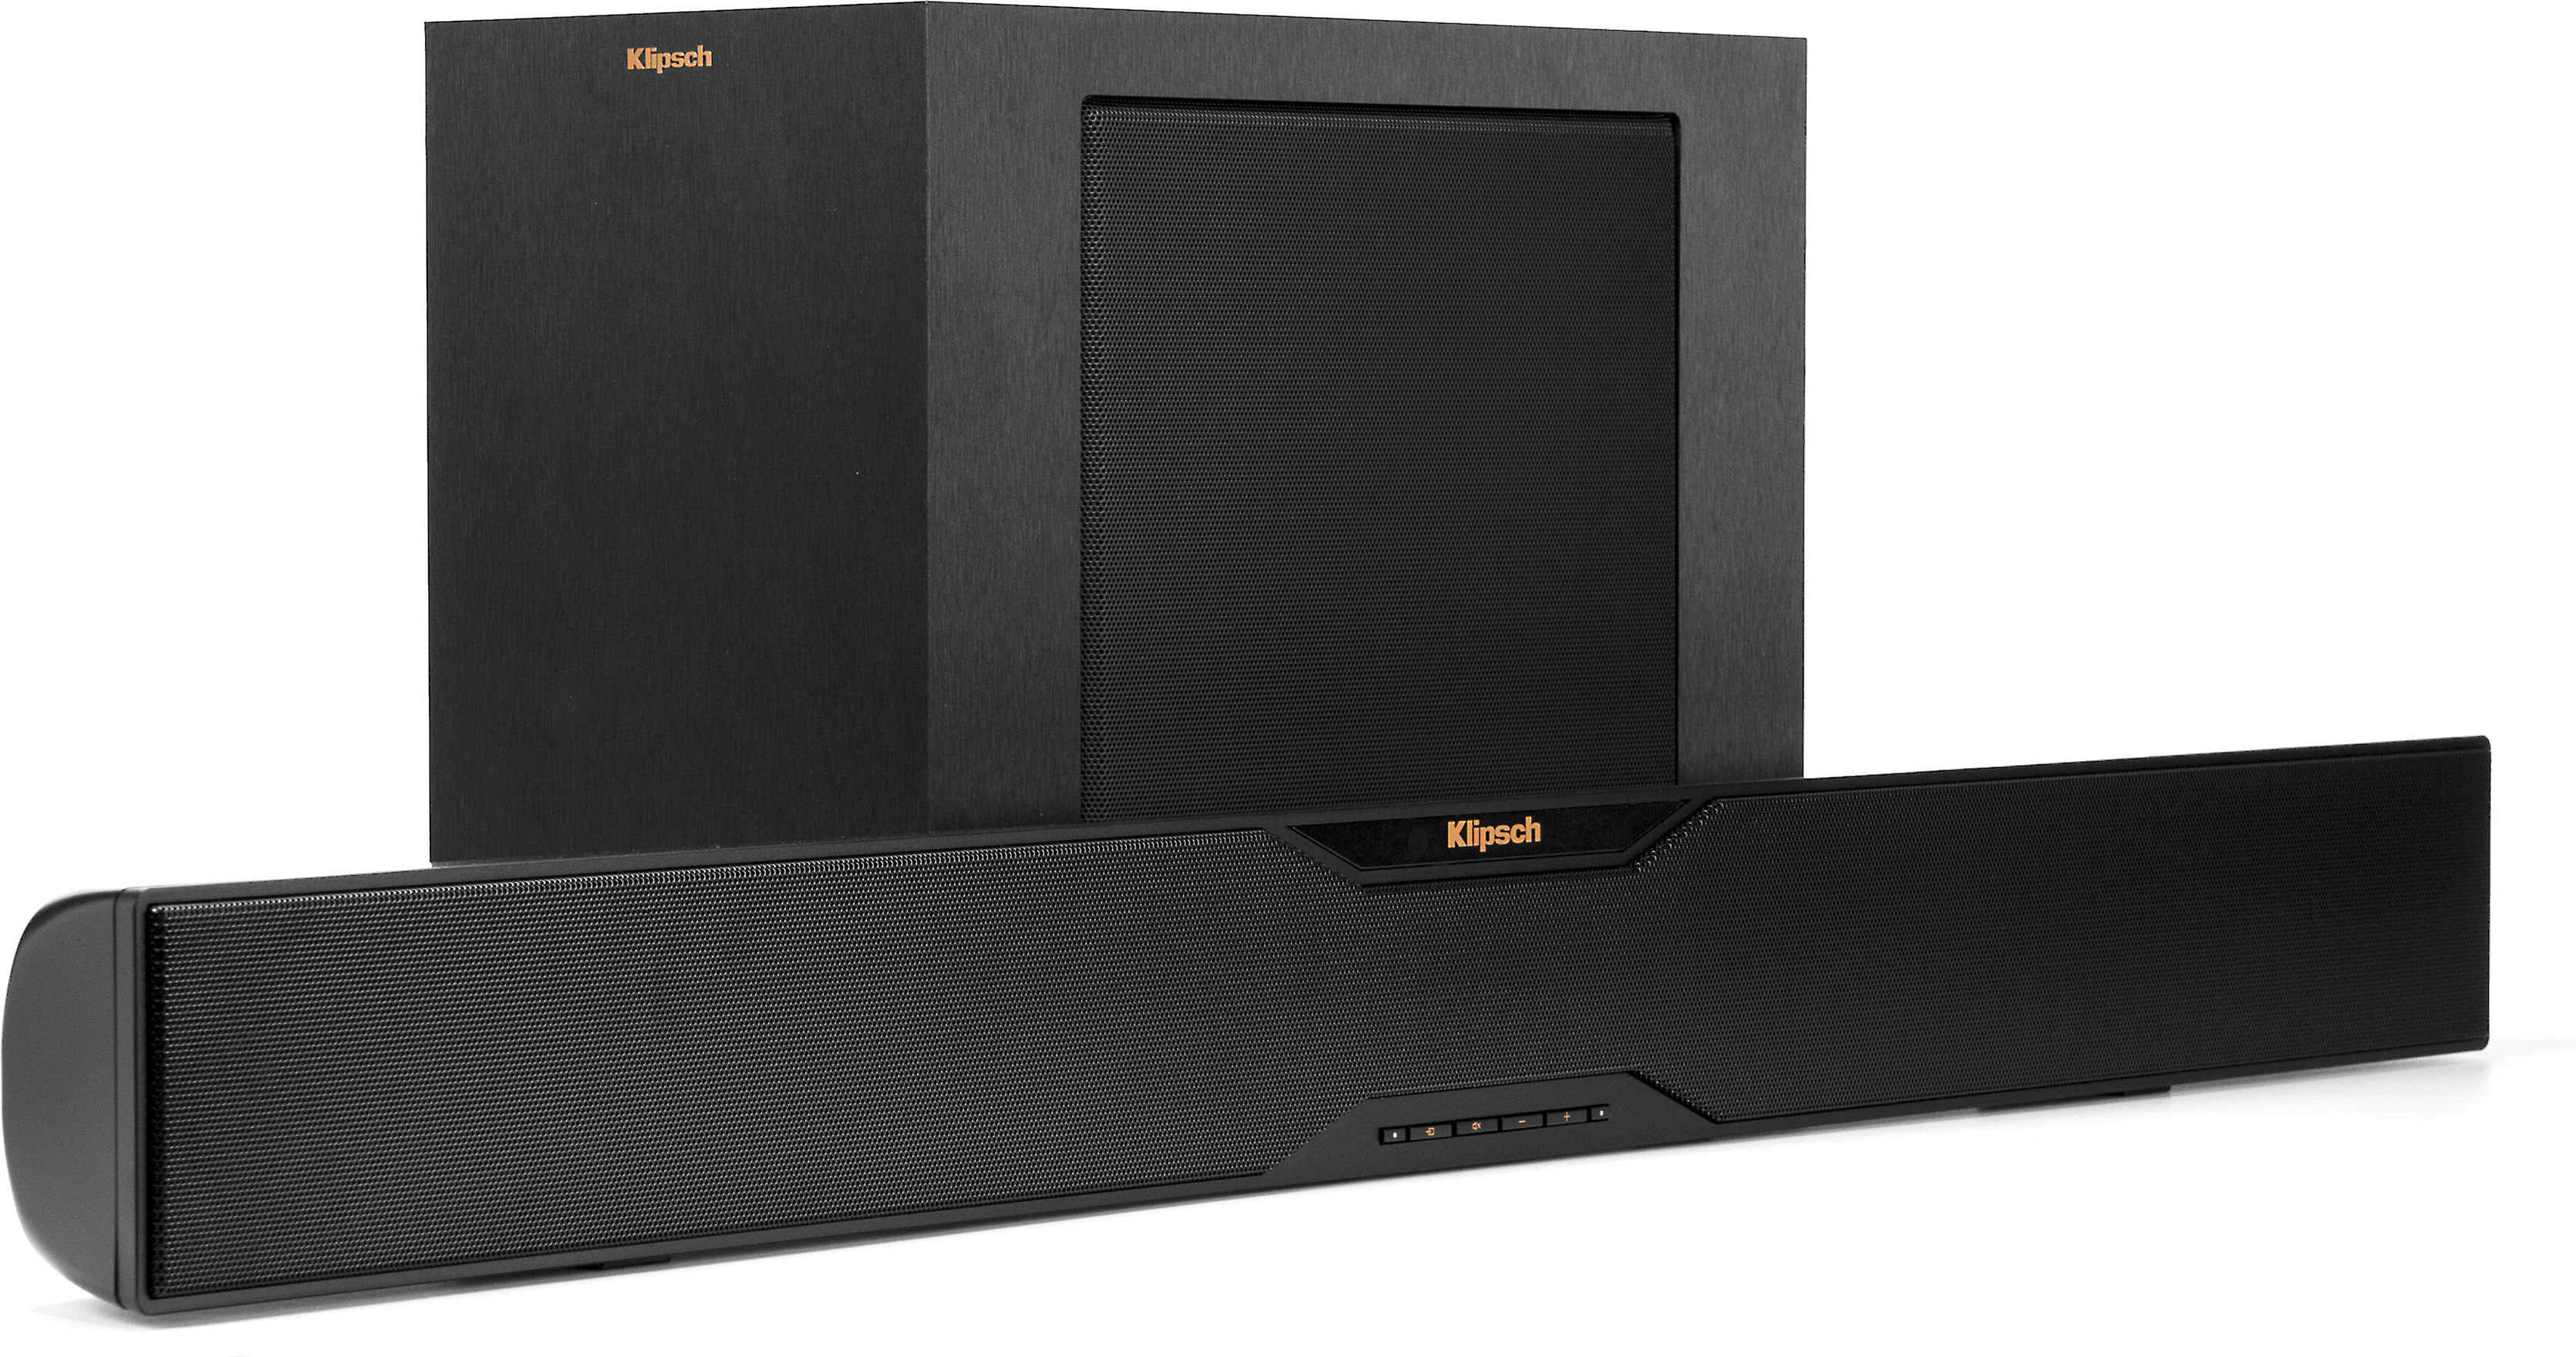 Klipsch Reference R-10B Powered home theater sound bar with